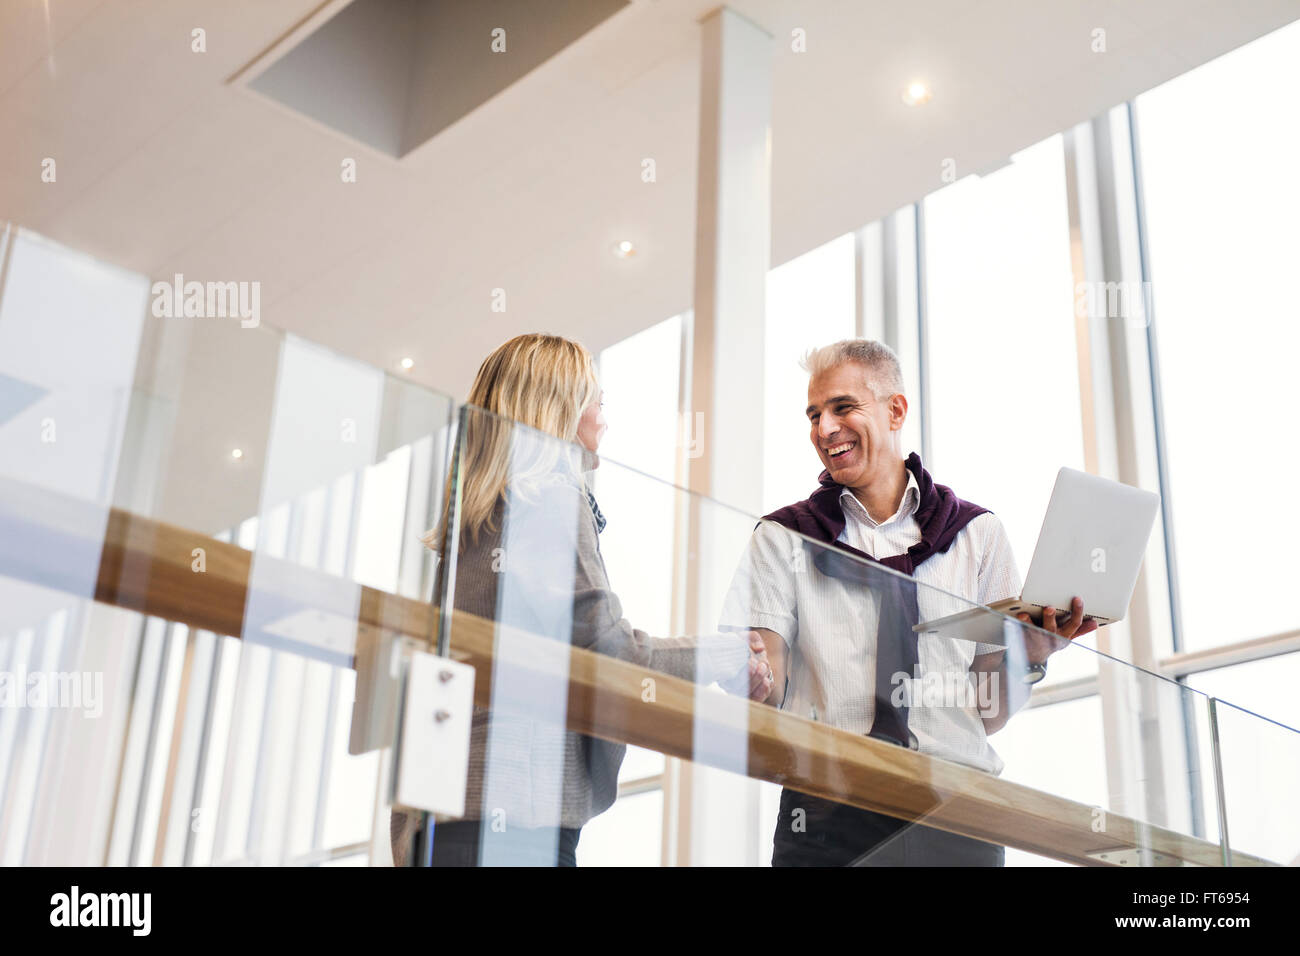 Low angle view of happy business people shaking hands at hotel lobby - Stock Image